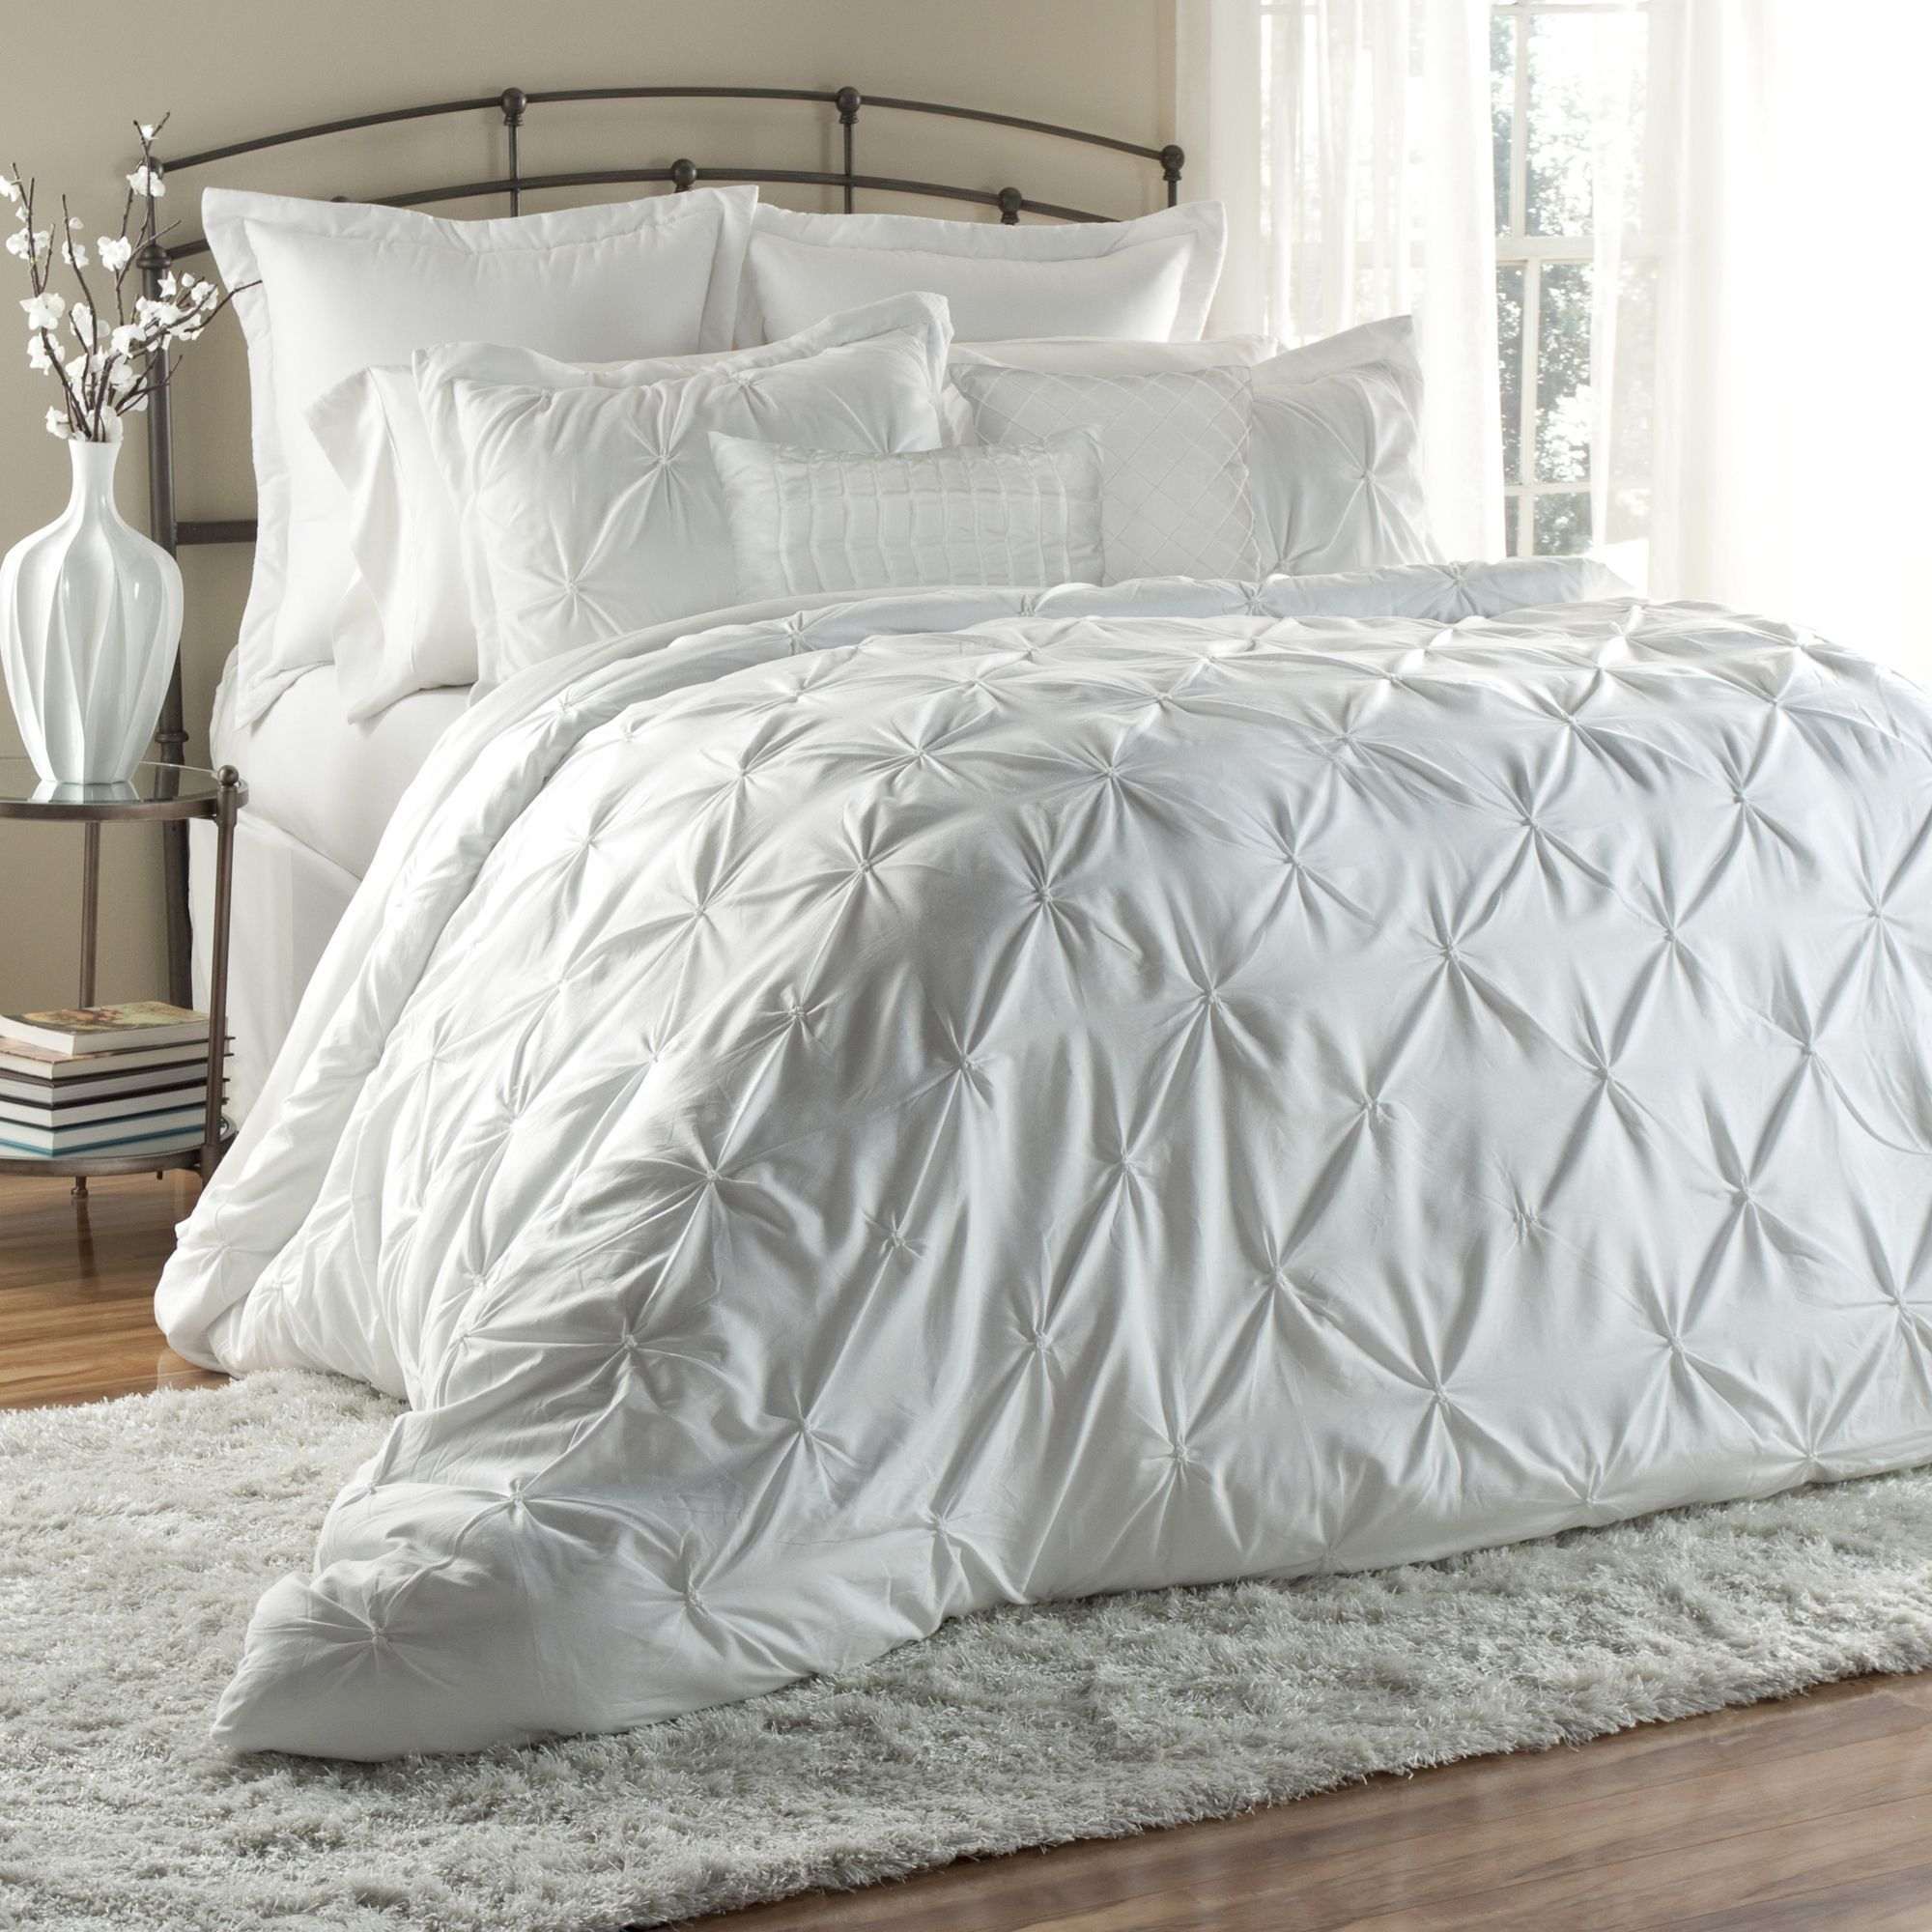 Lush Decor Lux 6 Piece Comforter Set Ping Great Deals On Sets